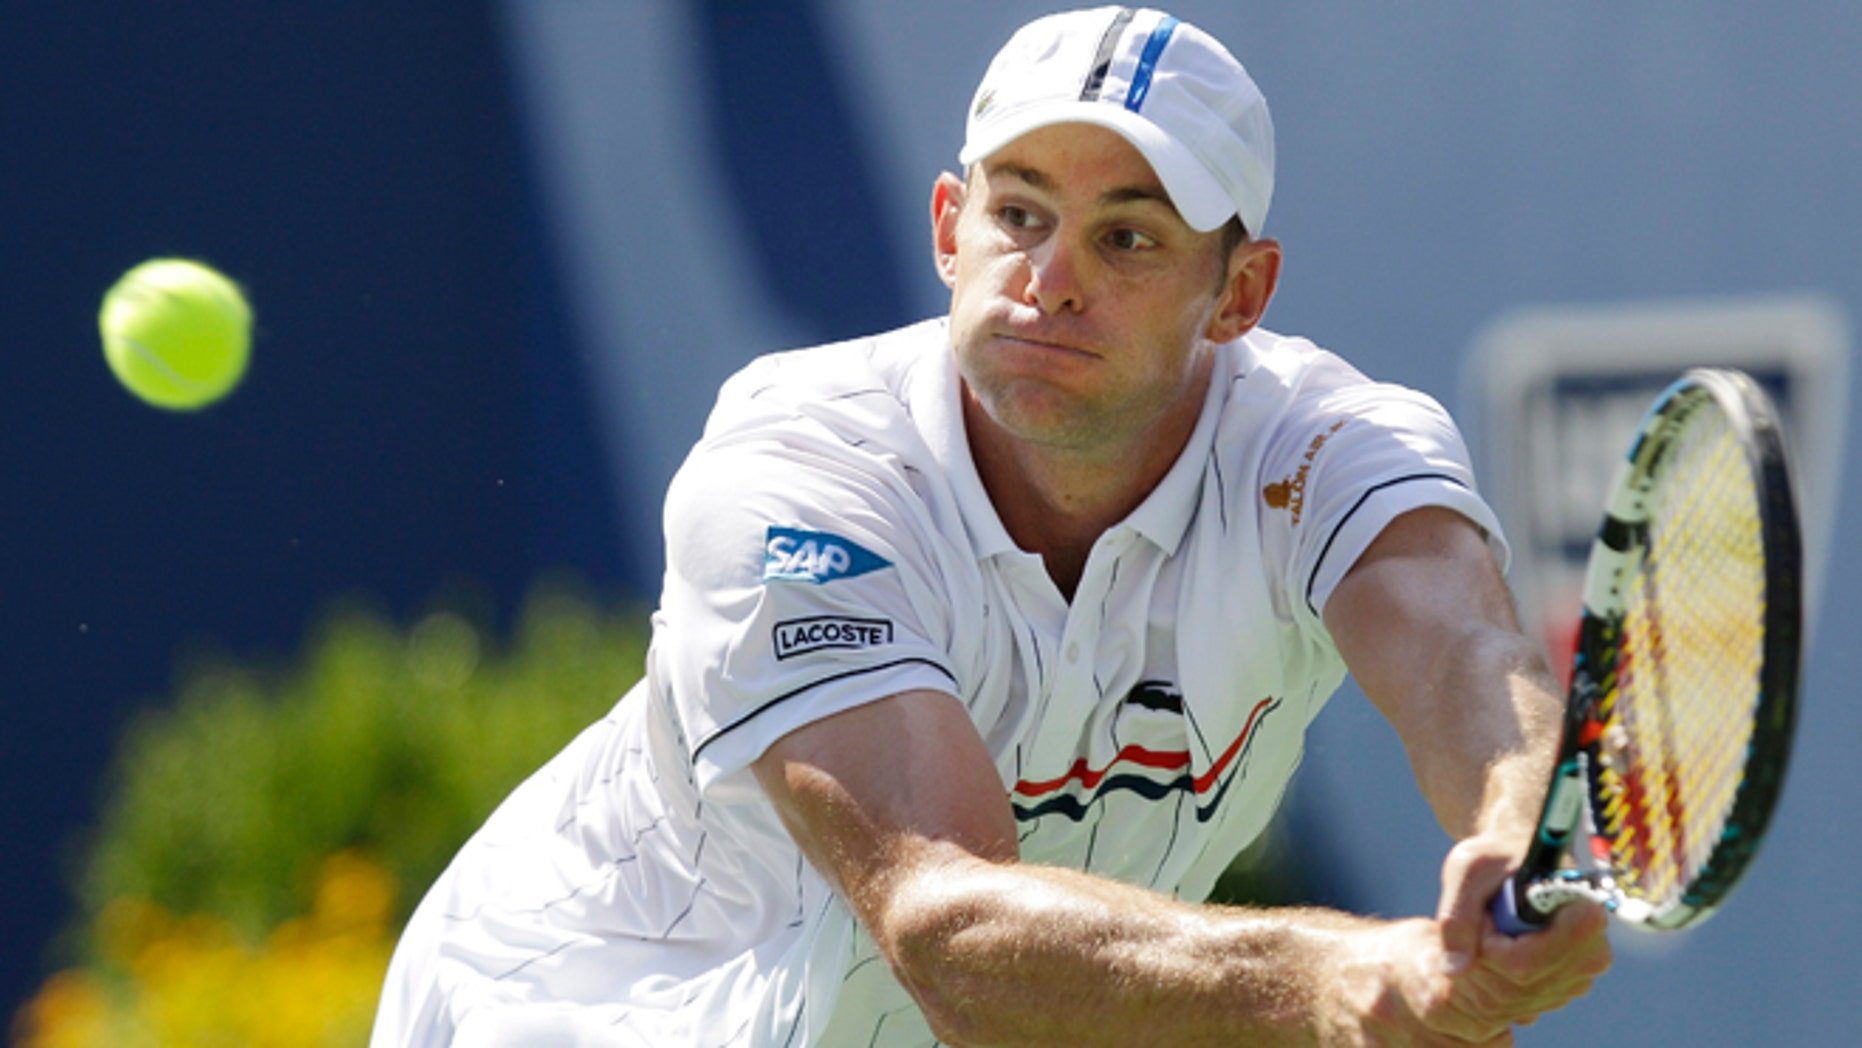 August 28, 2012: Andy Roddick returns a shot to Rhyne Williams at the 2012 US Open tennis tournament in New York.